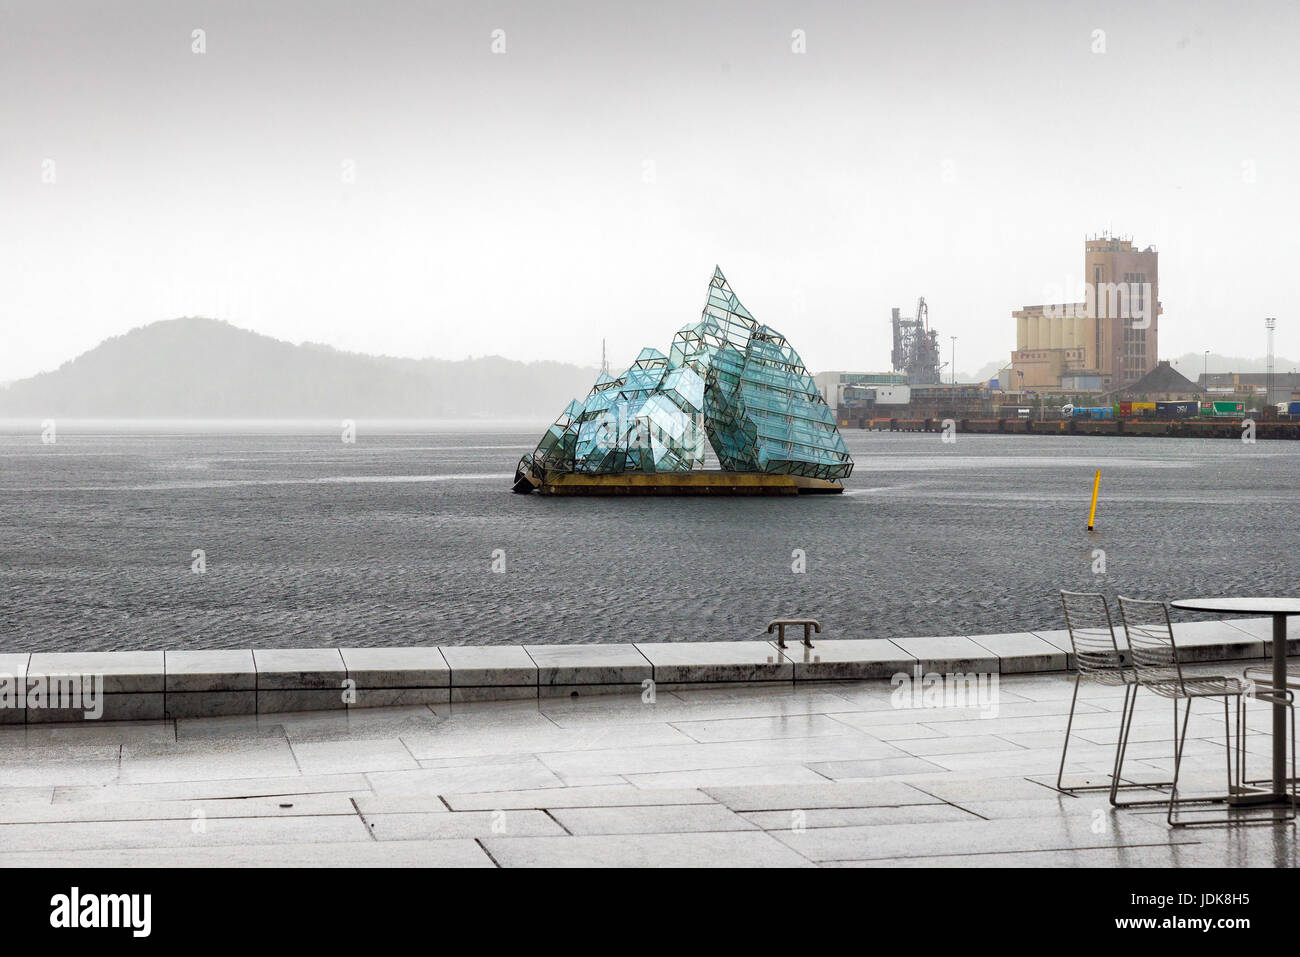 oslo, norway - june 7, 2017: the floating sculpture in front of